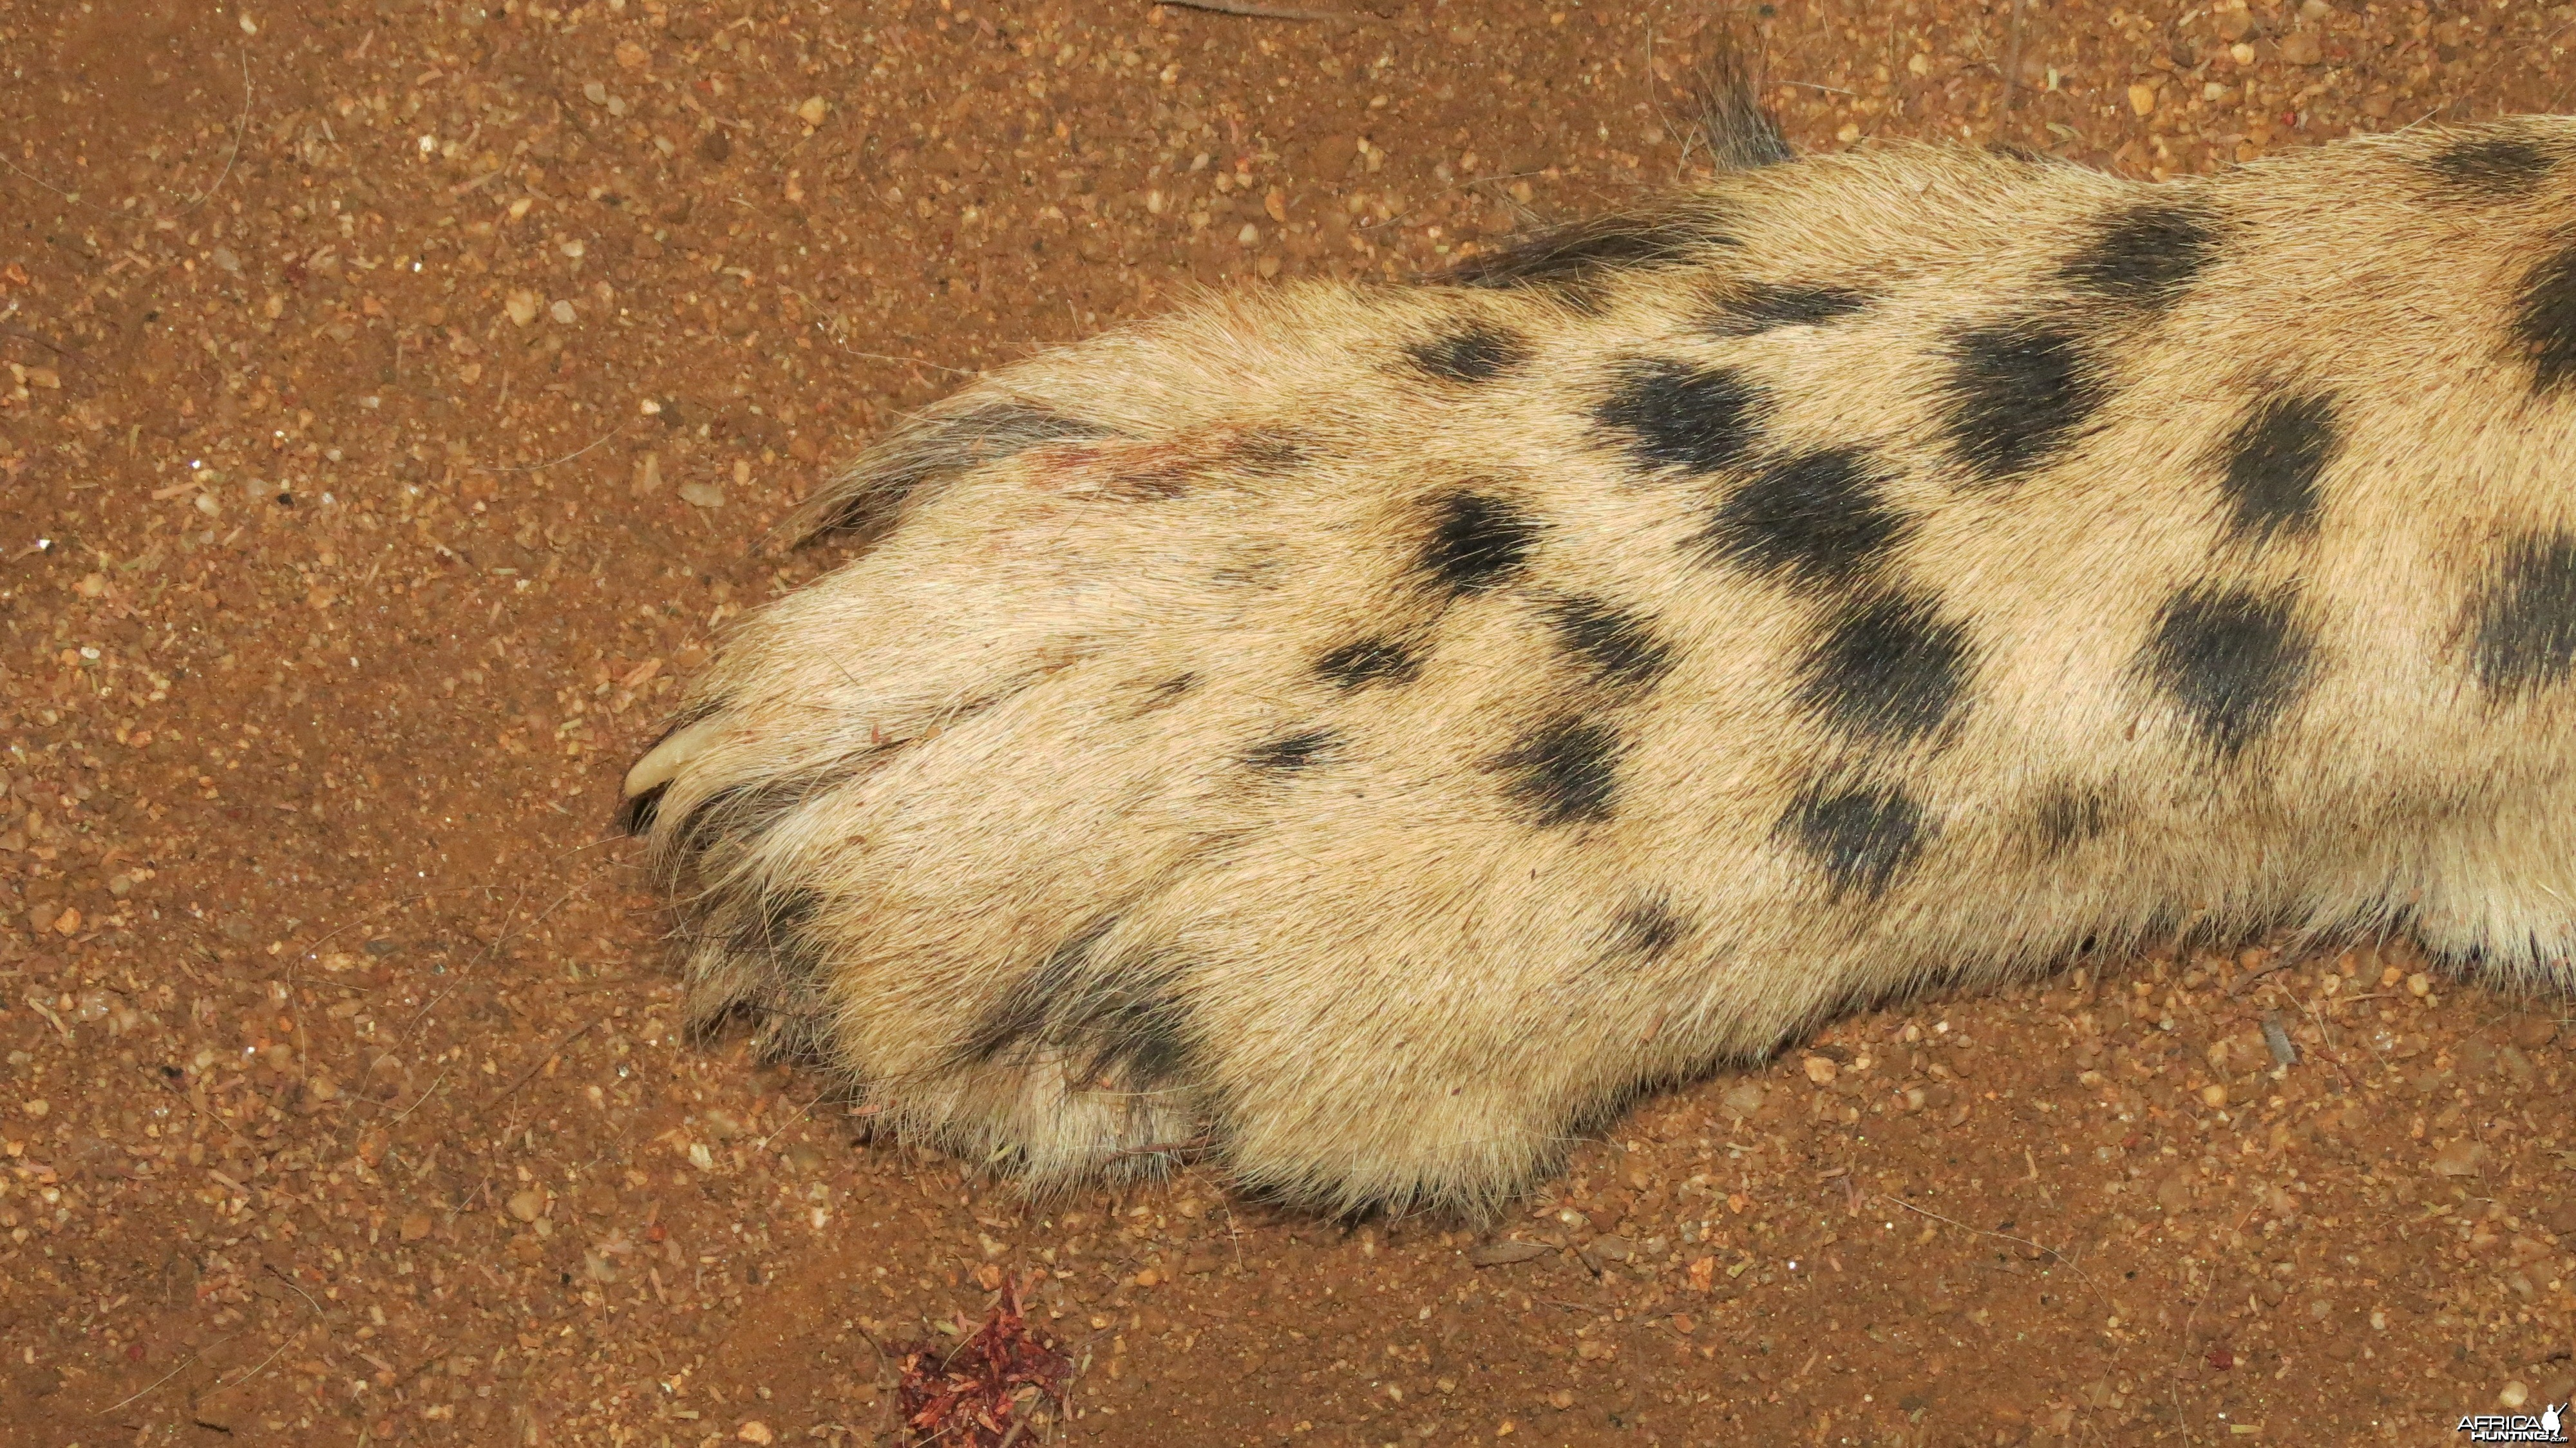 Cheetah front paw